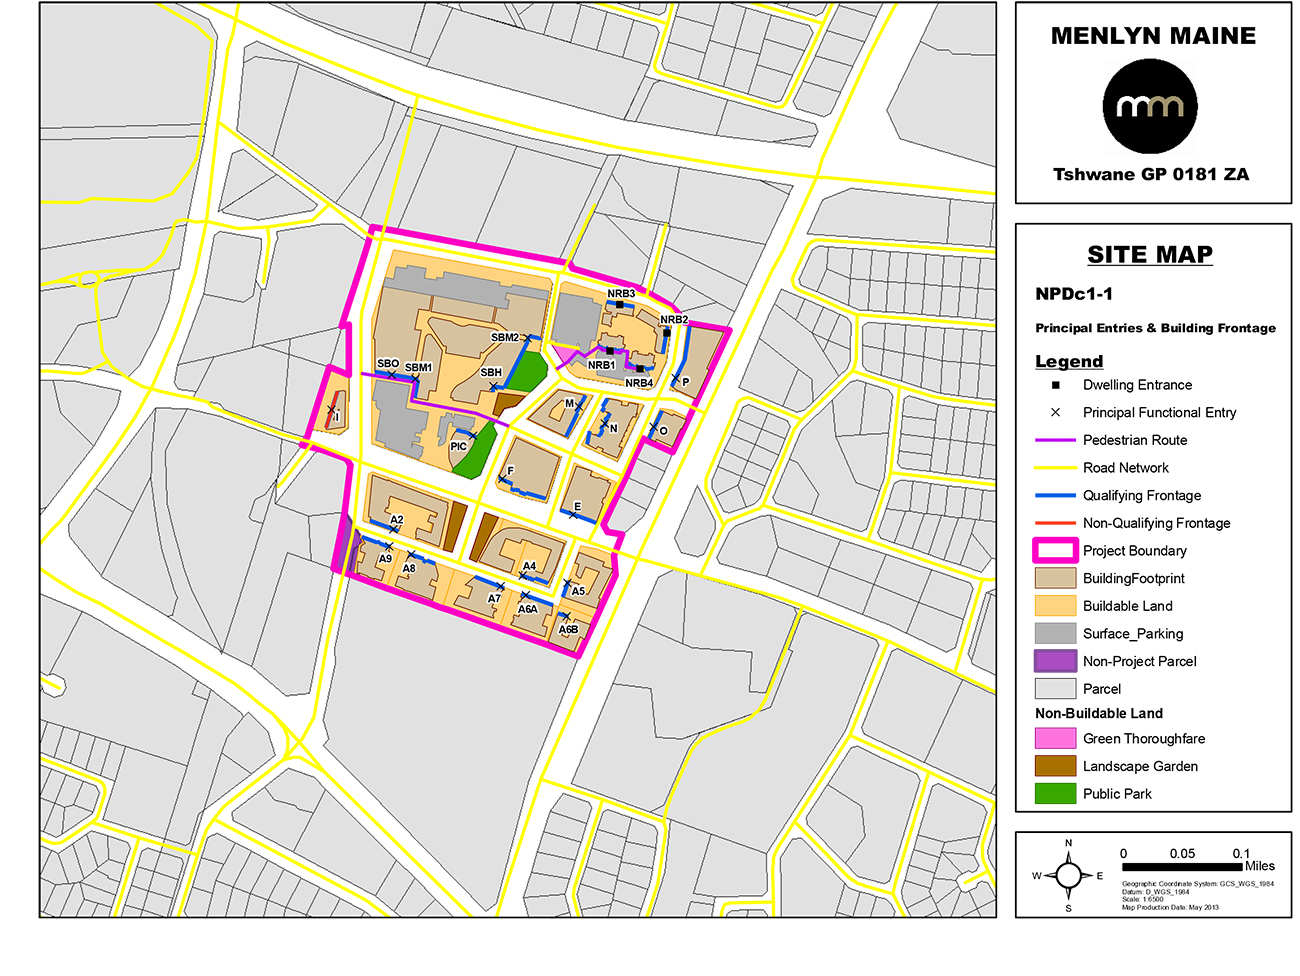 menlyn-maine-site-map